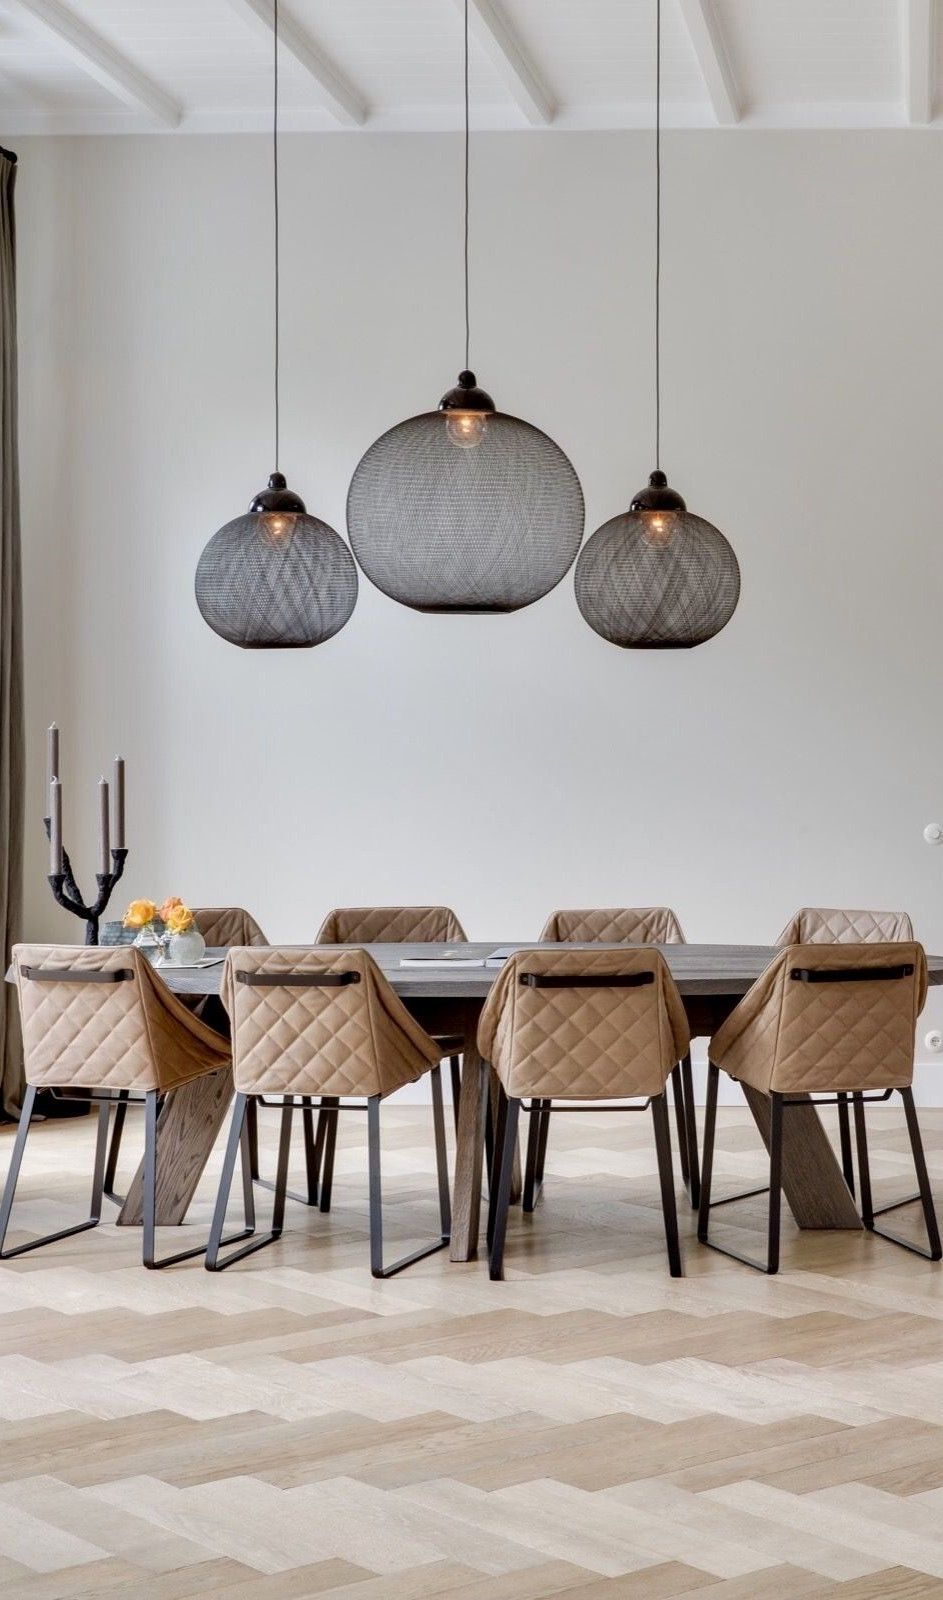 Non Random Pendant Features Black Or White Fiberglass Soaked In Epoxy Resin With Powder Coated Alu In 2021 Dining Table Lamps Living Room Lighting Dining Room Lighting